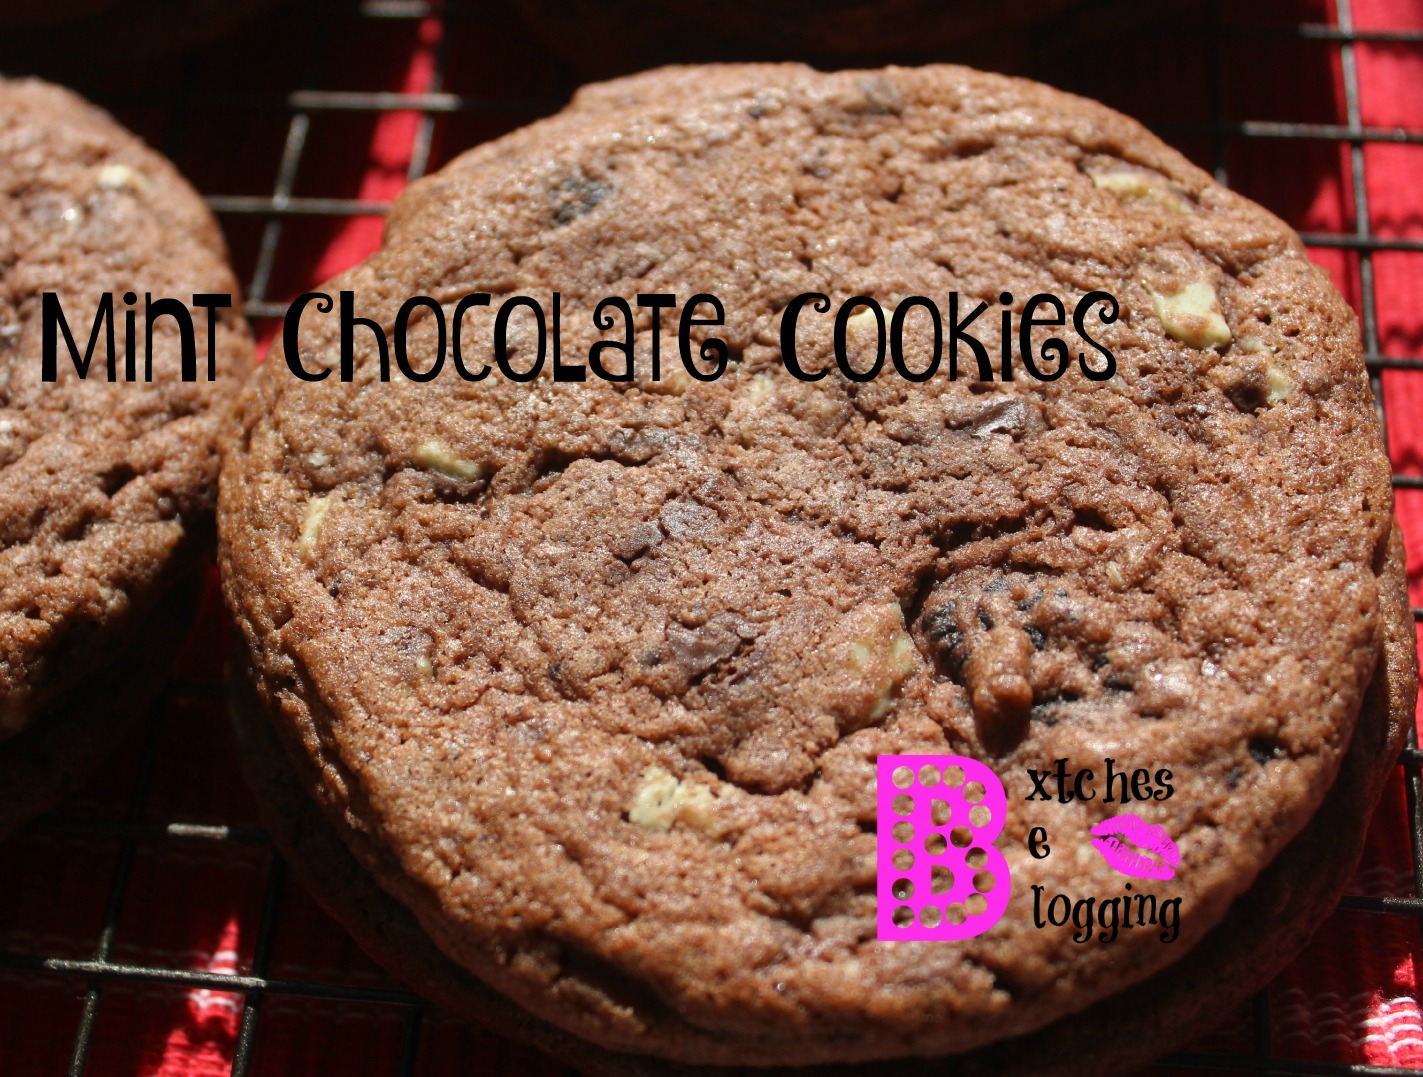 Mint Chocolate Cookies | Recipe on www.bxtchesbeblogging.com